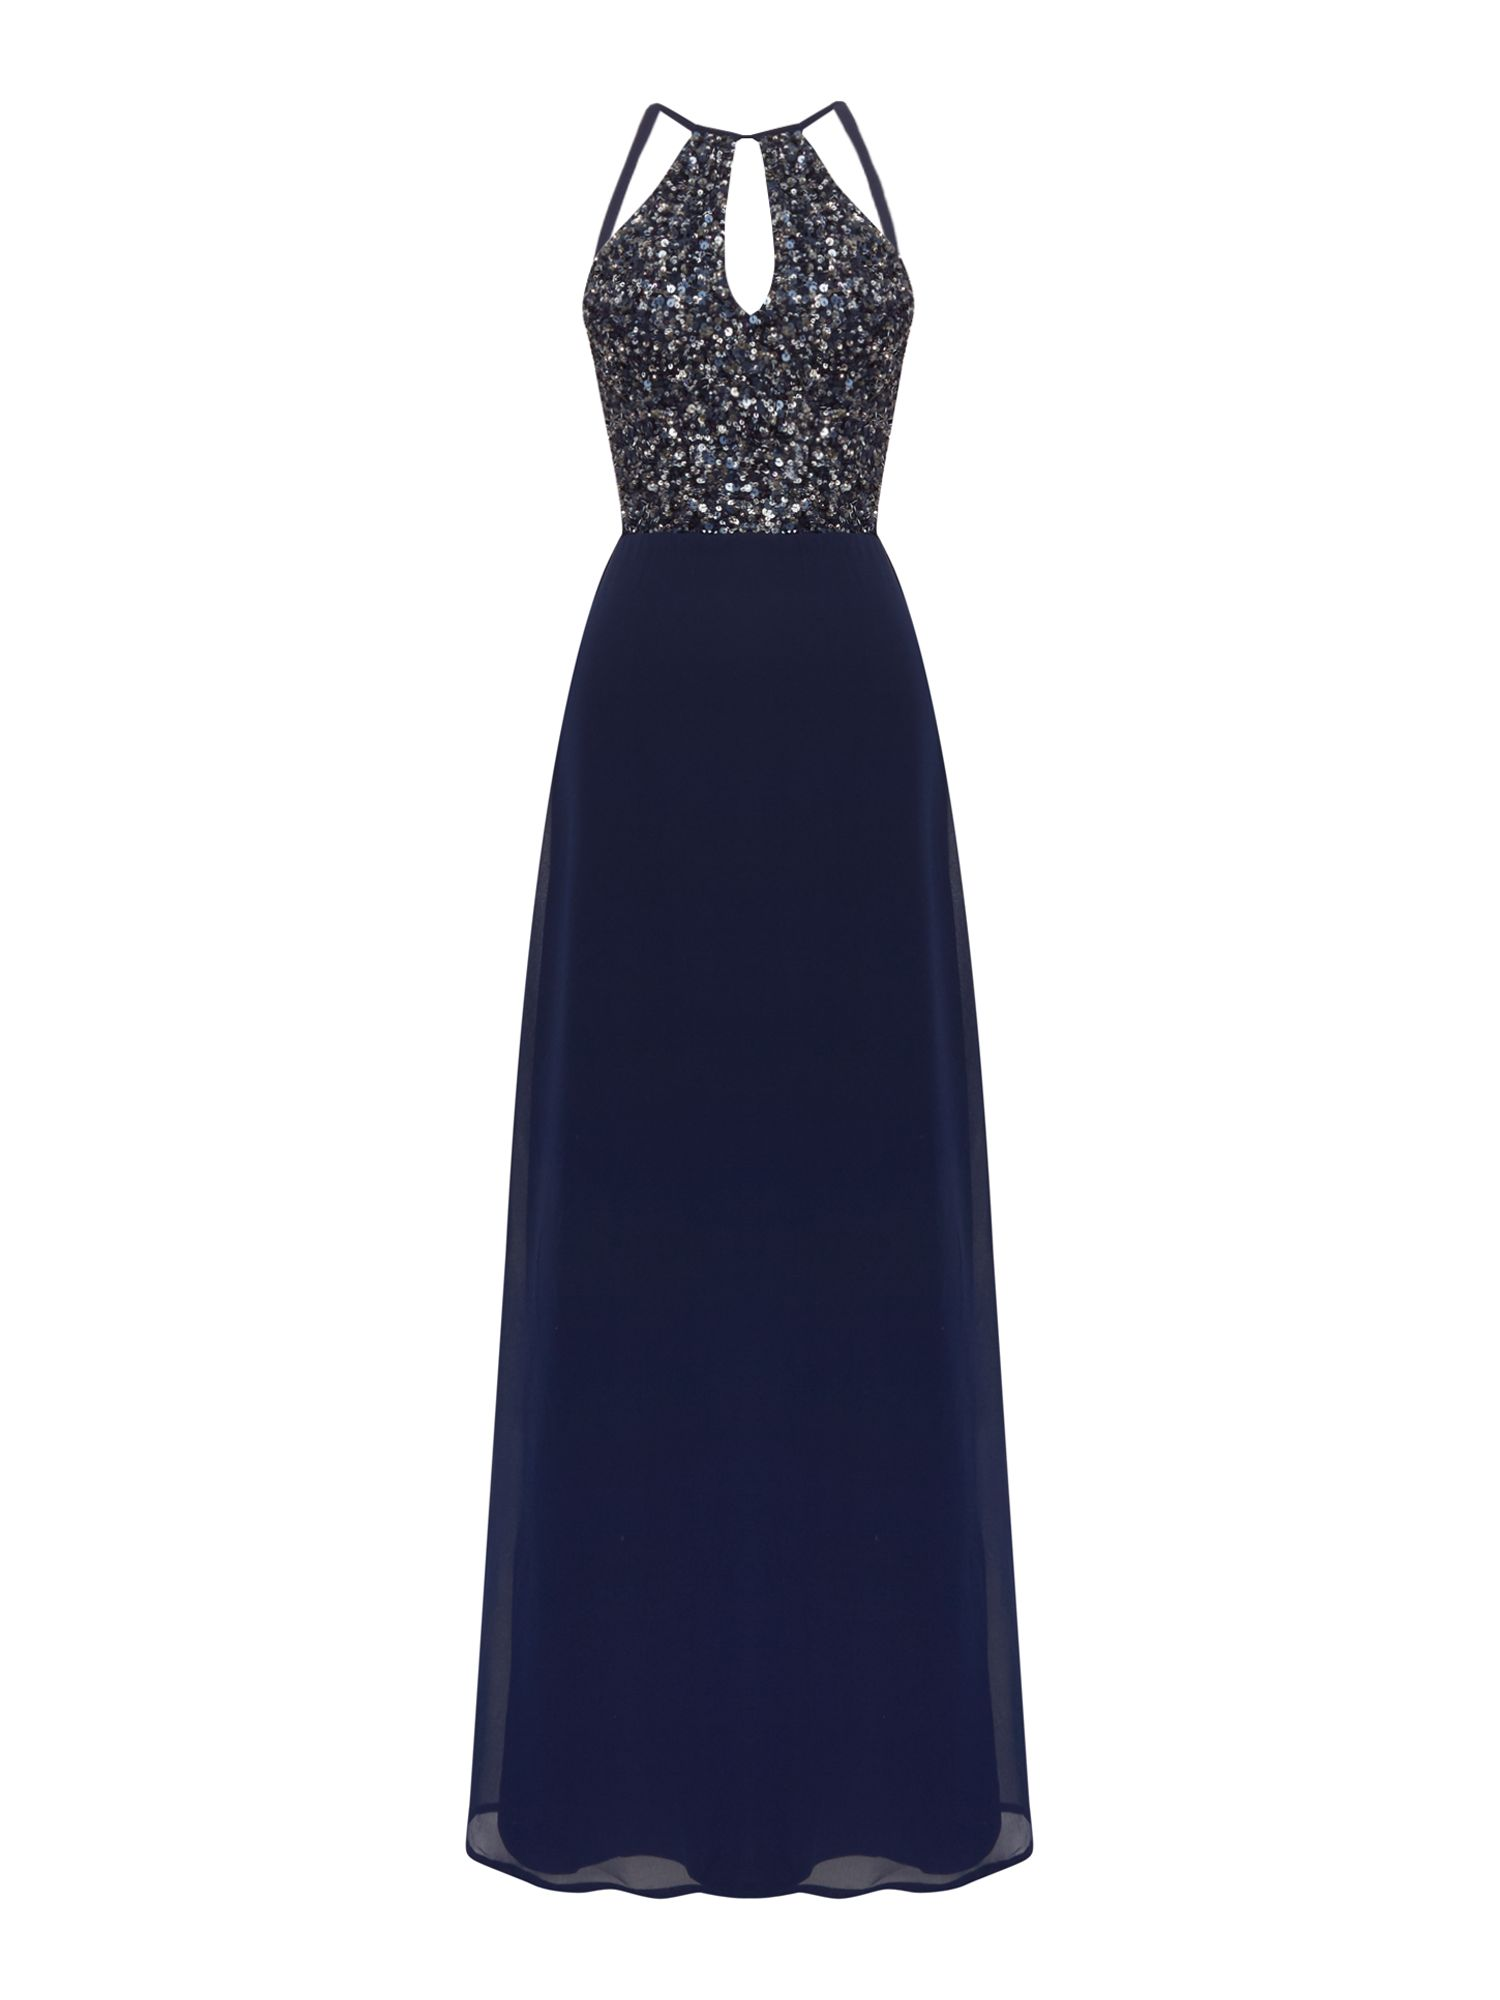 Lace and Beads Sleeveless keyhole maxi dress, Blue